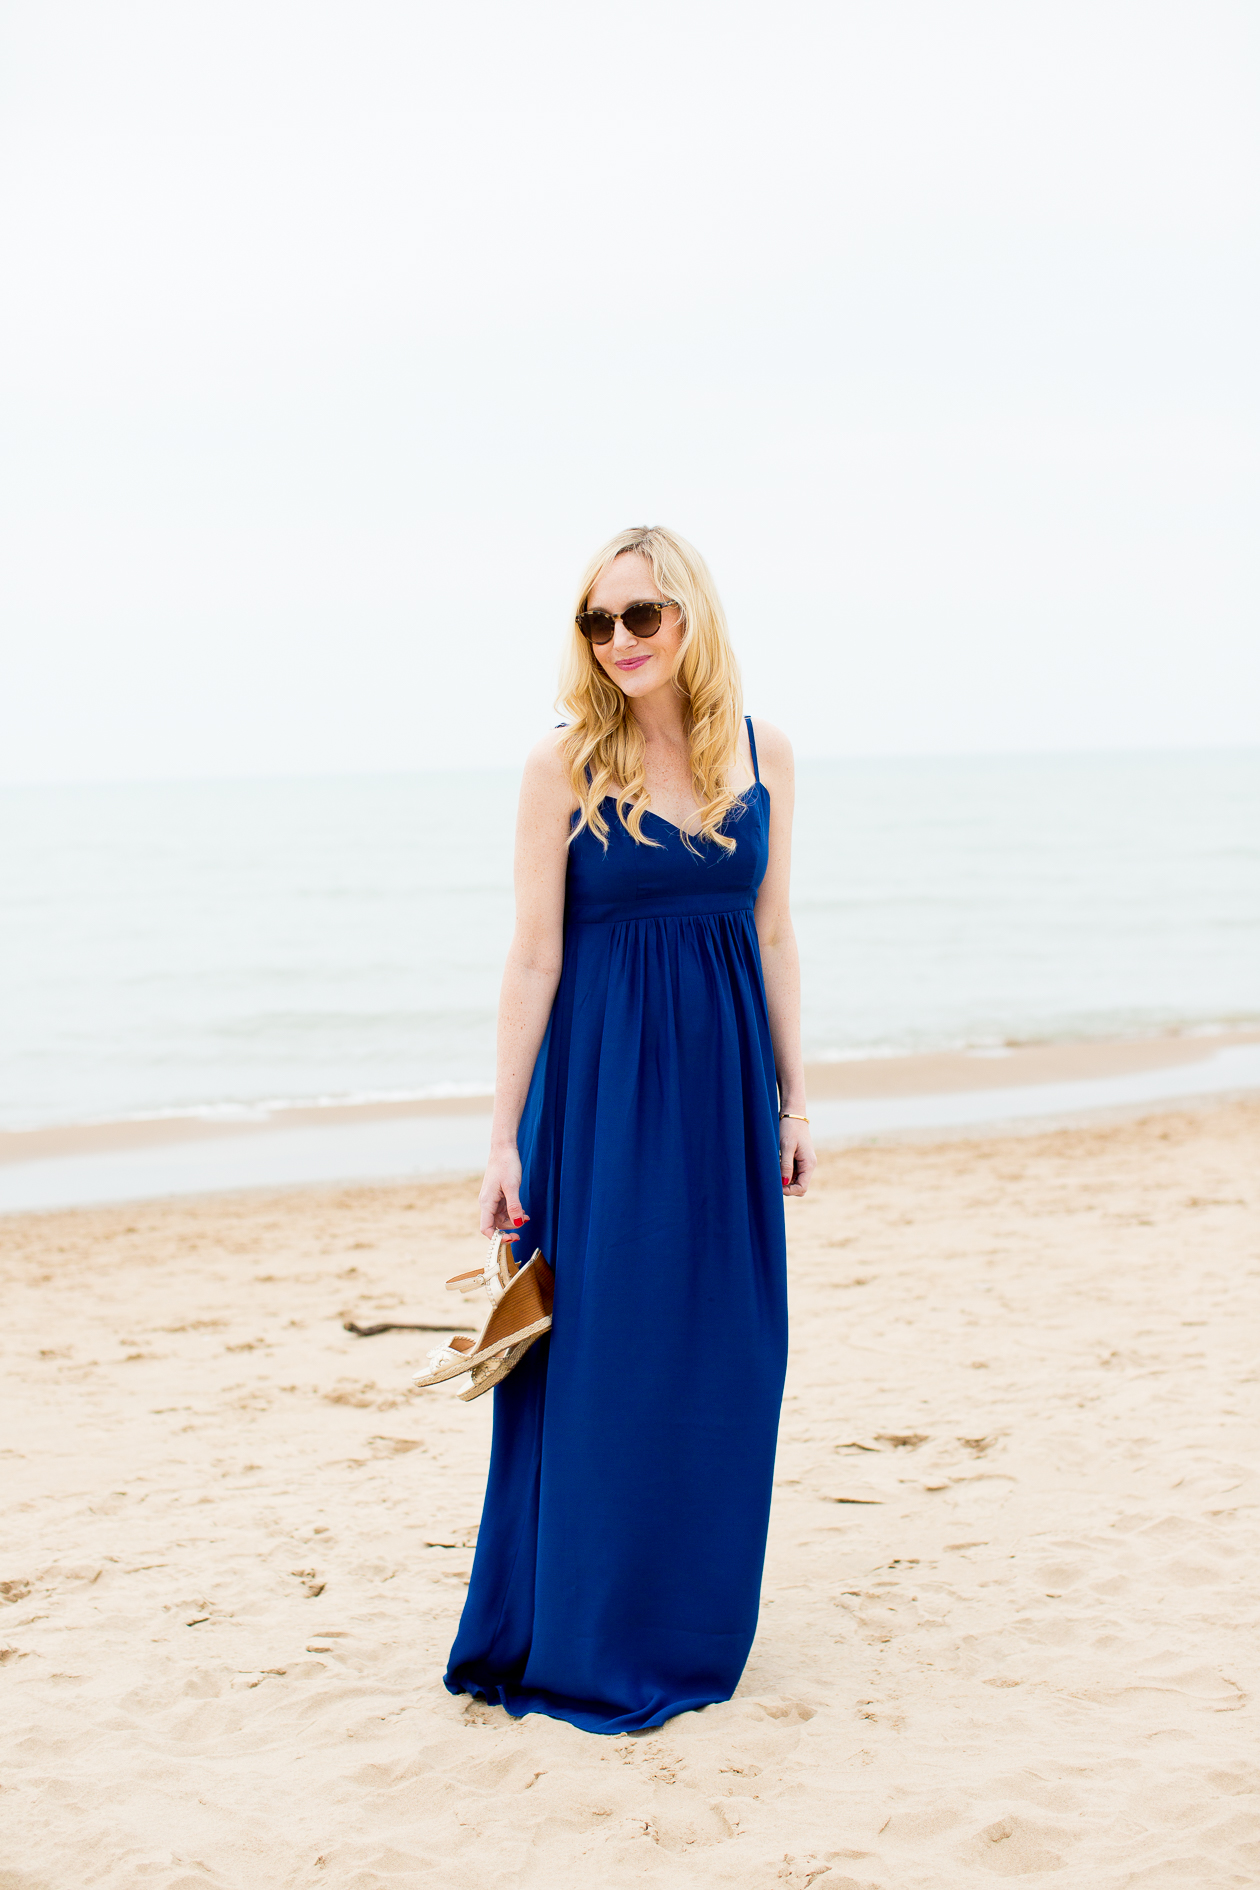 Dresses for Every Occasion - Kelly in the City